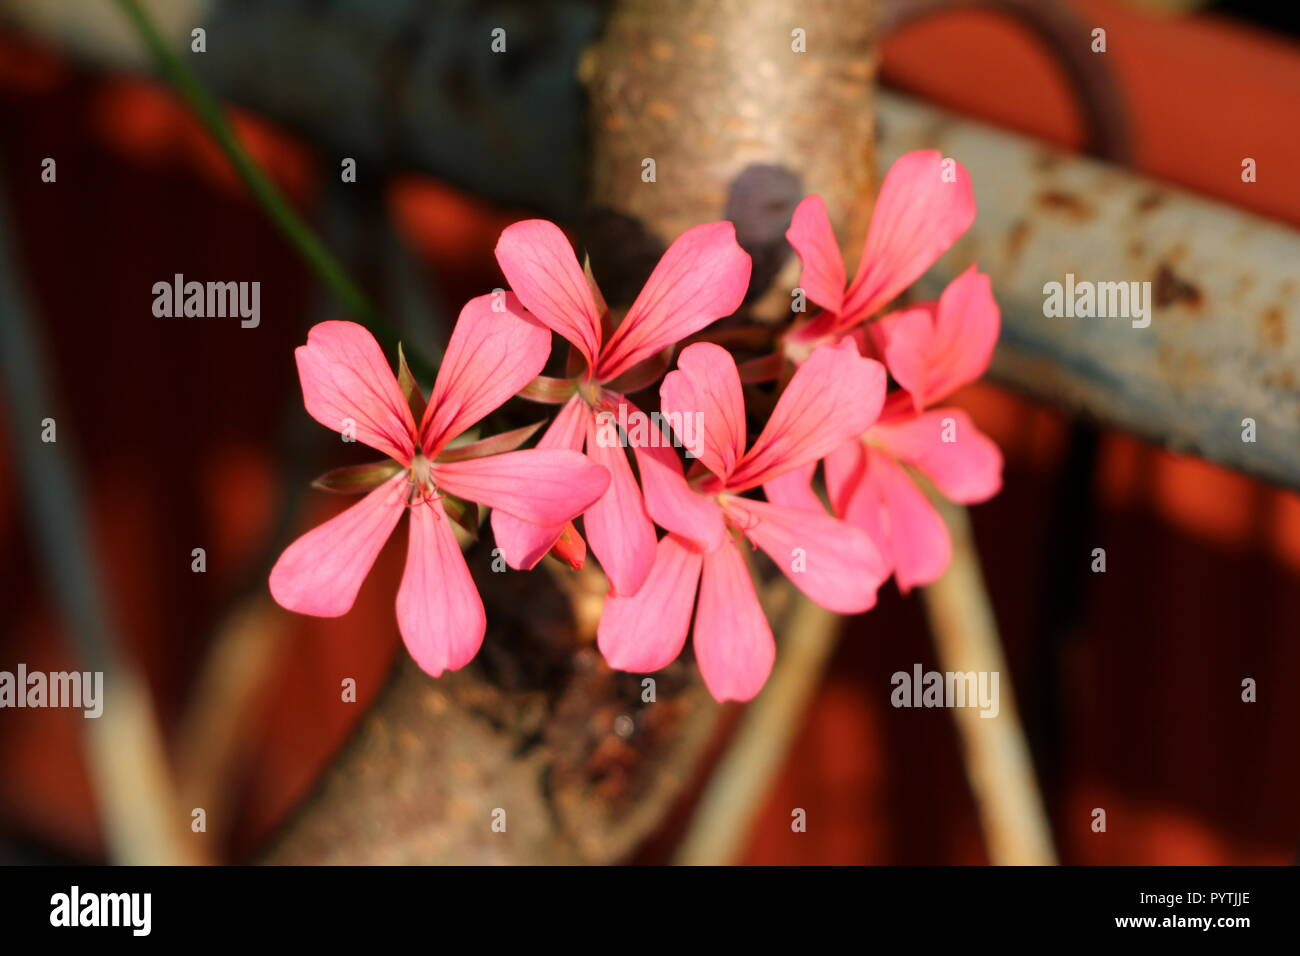 Dark pink fully open blooming Pelargonium flowers reaching out towards sun over old rusted metal fence and thick wooden branches at sunset - Stock Image